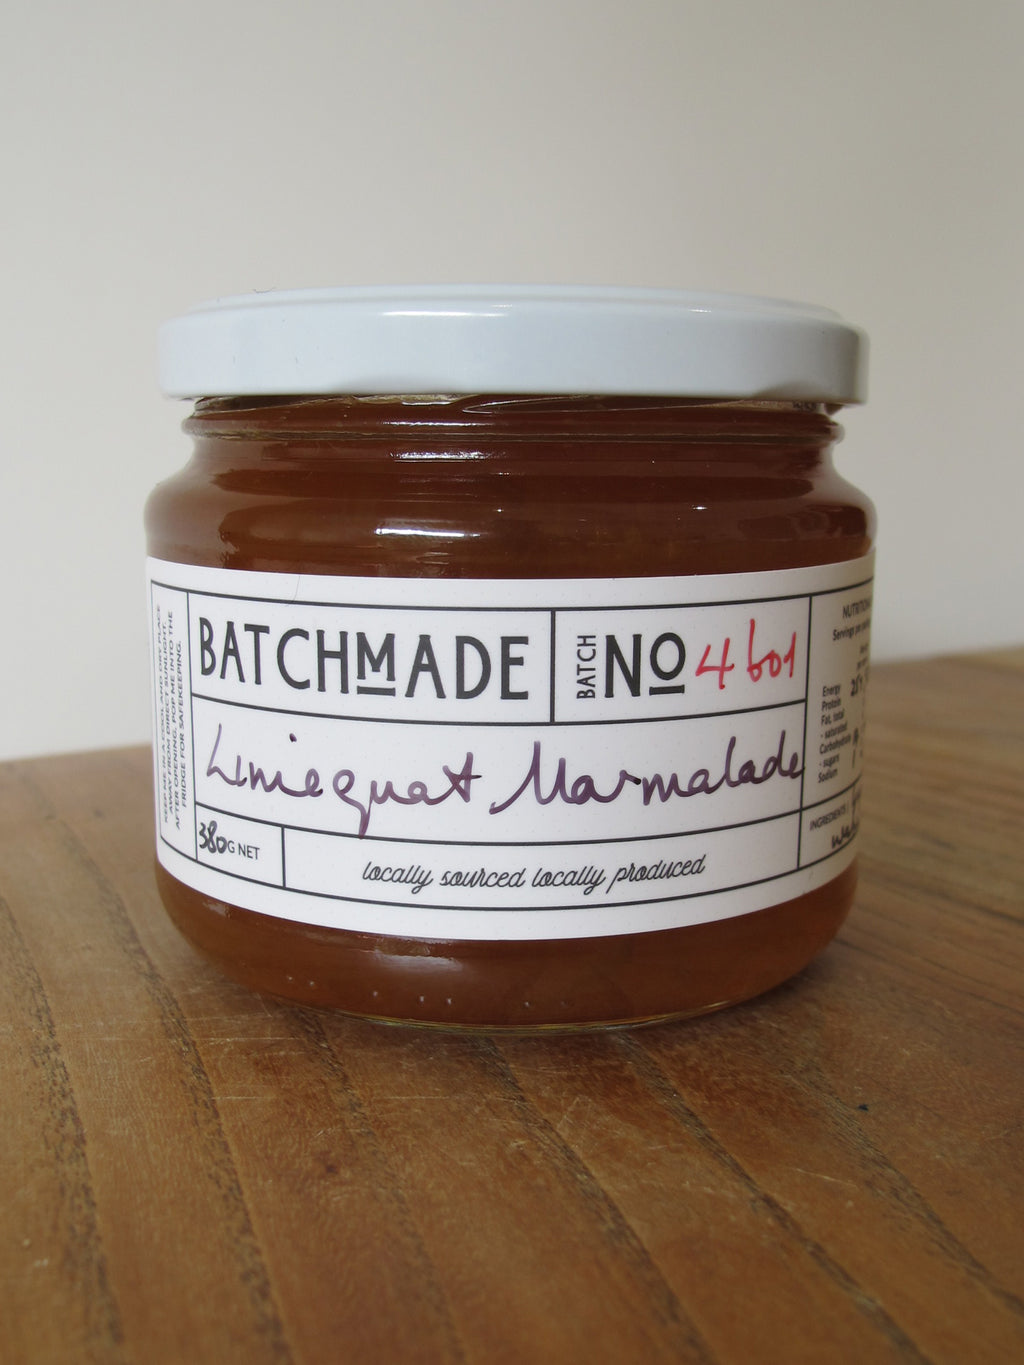 Limequat marmalade in BatchMade jar